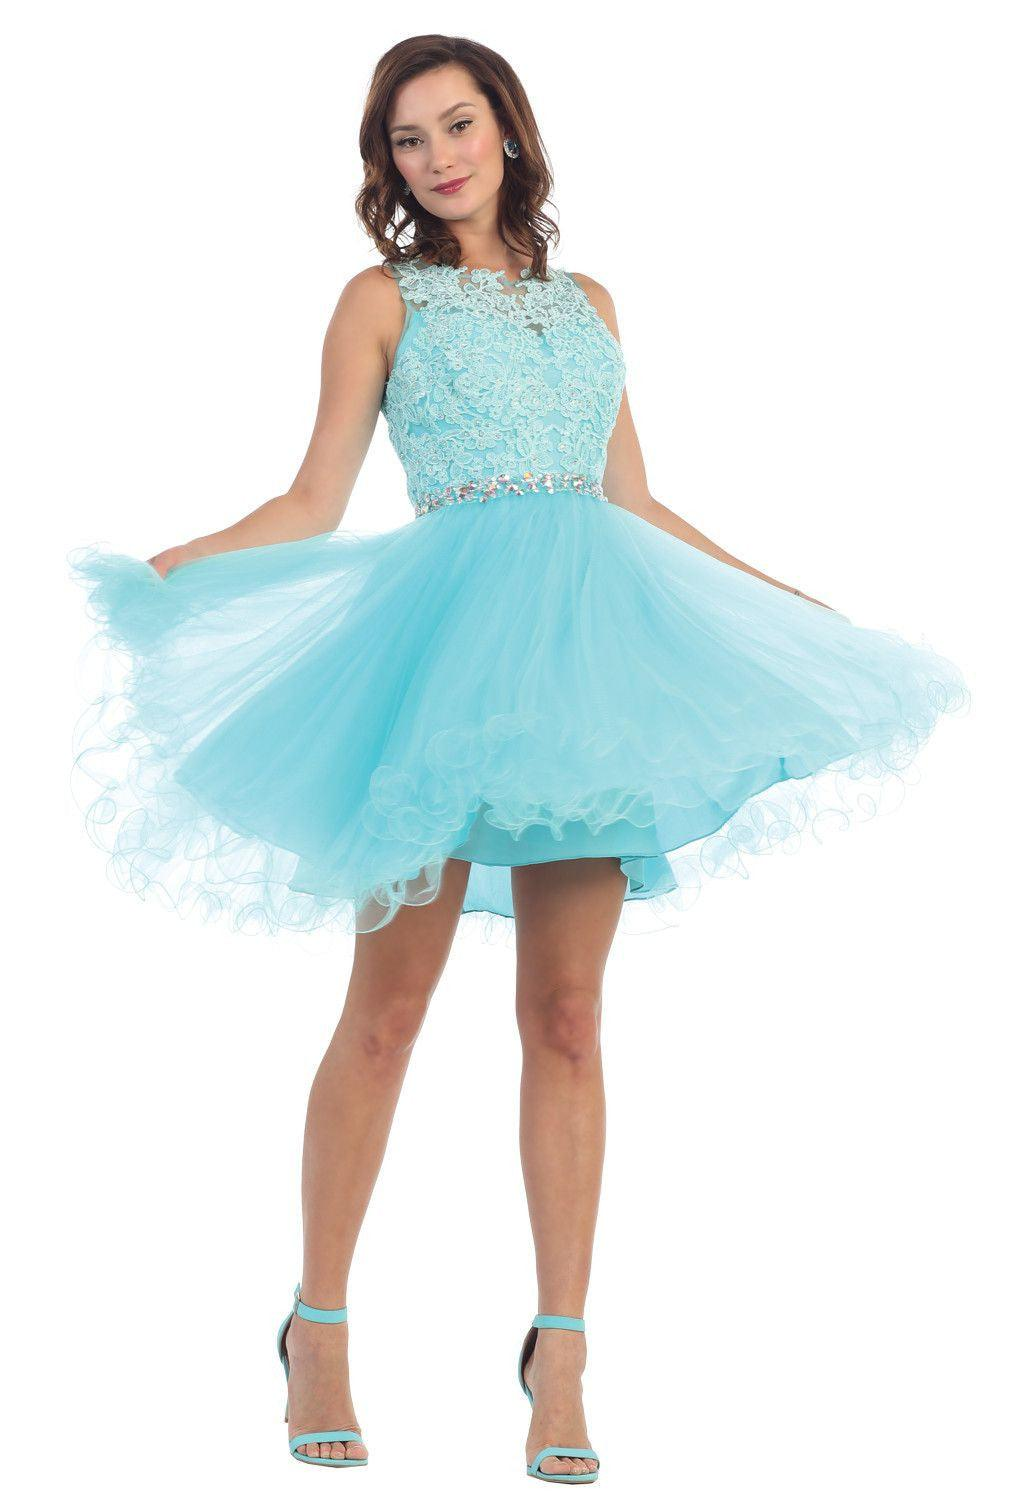 Short Prom Homecoming Graduation Dress - The Dress Outlet Aqua May Queen